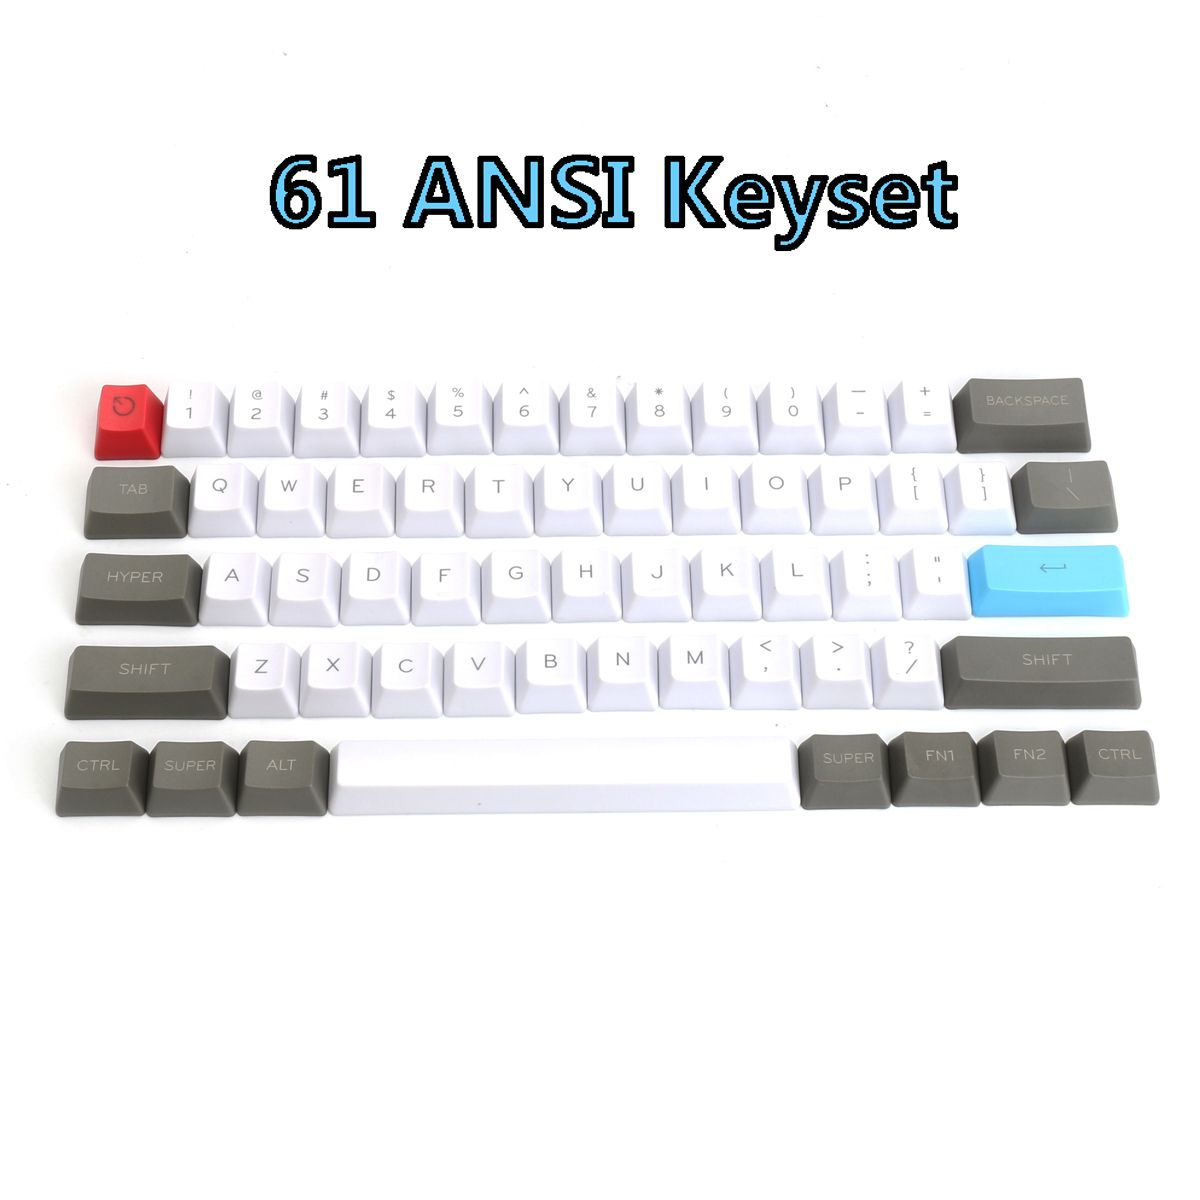 e1a2daebe17 61 Key ANSI Layout OEM Profile PBT Thick Keycaps for 60% Mechanical Keyboard  - Clever Mart